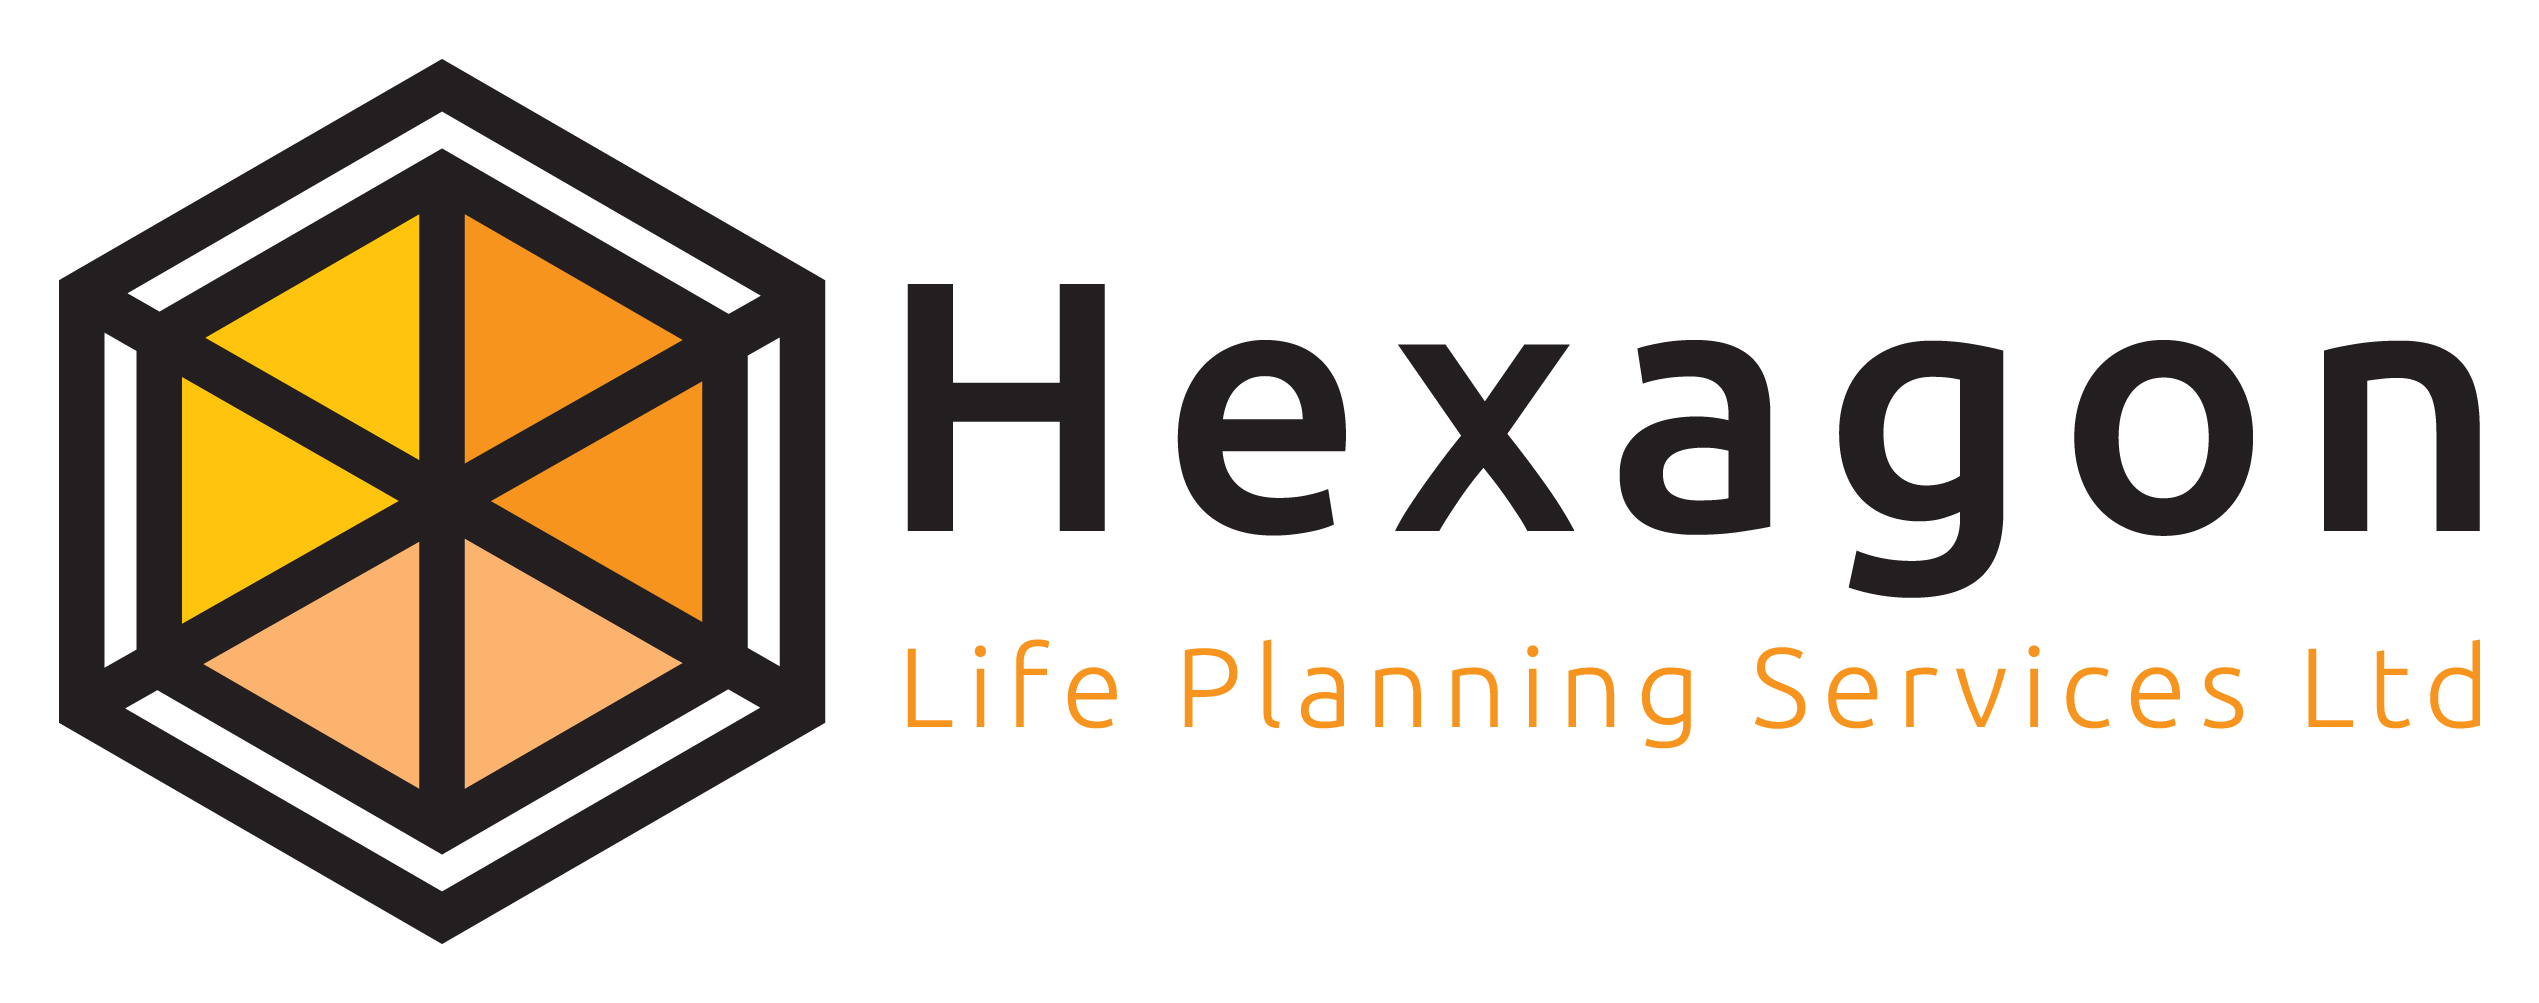 Hexagon Life Planning Services